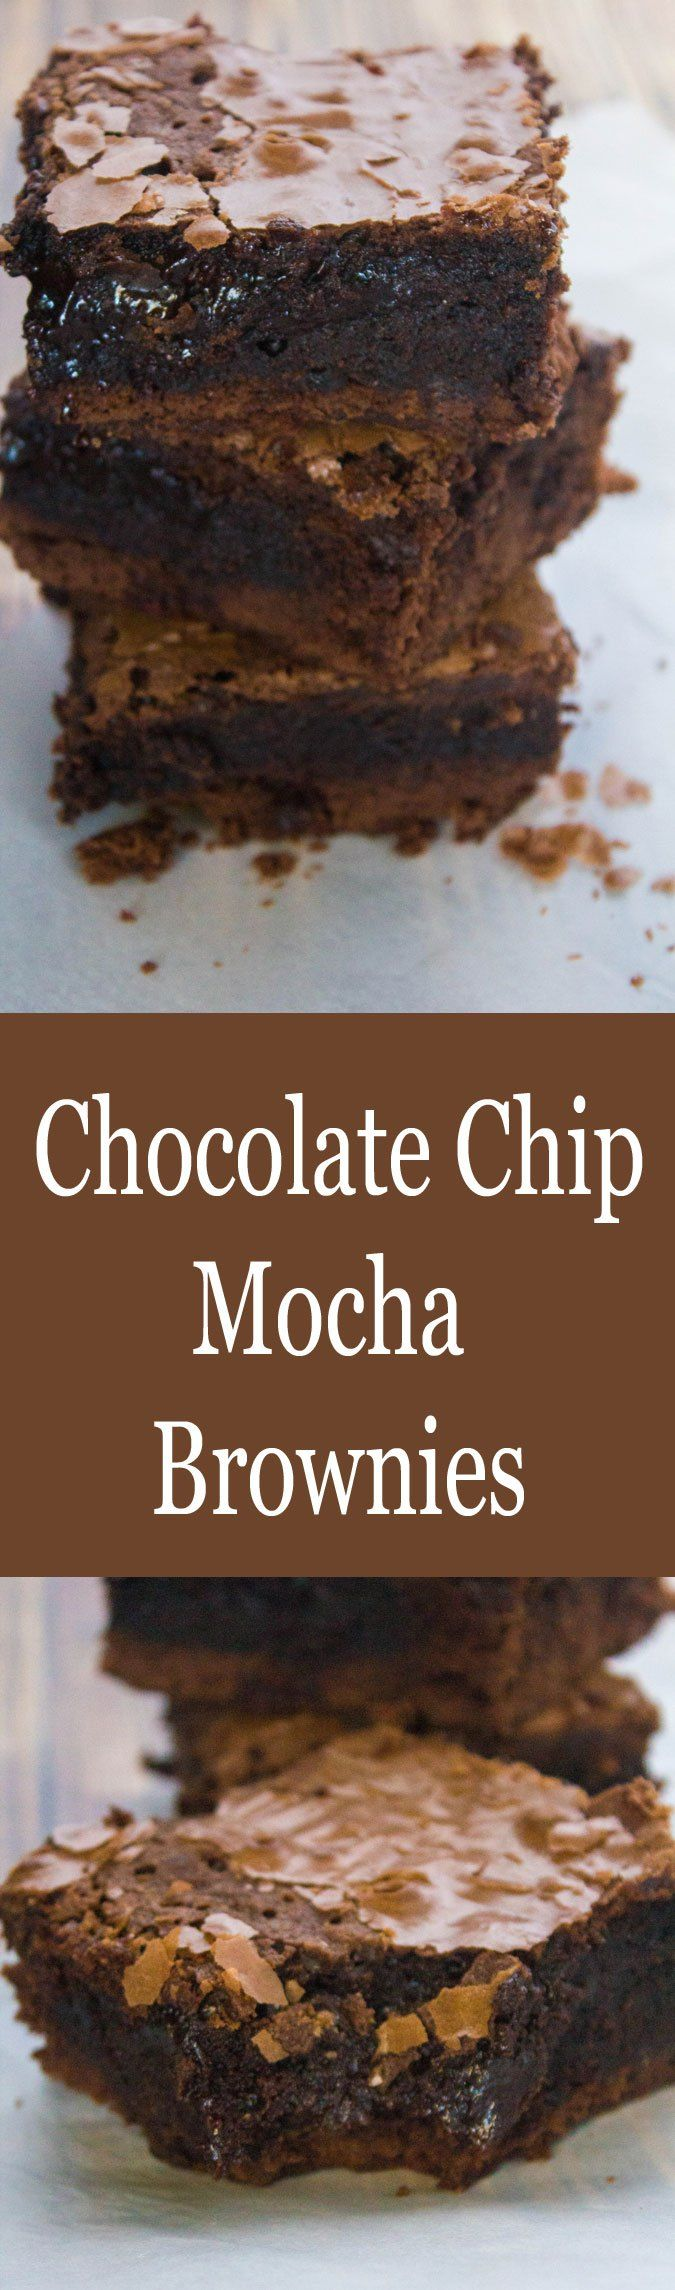 Chocolate Chip Mocha Brownies for #SundaySupper